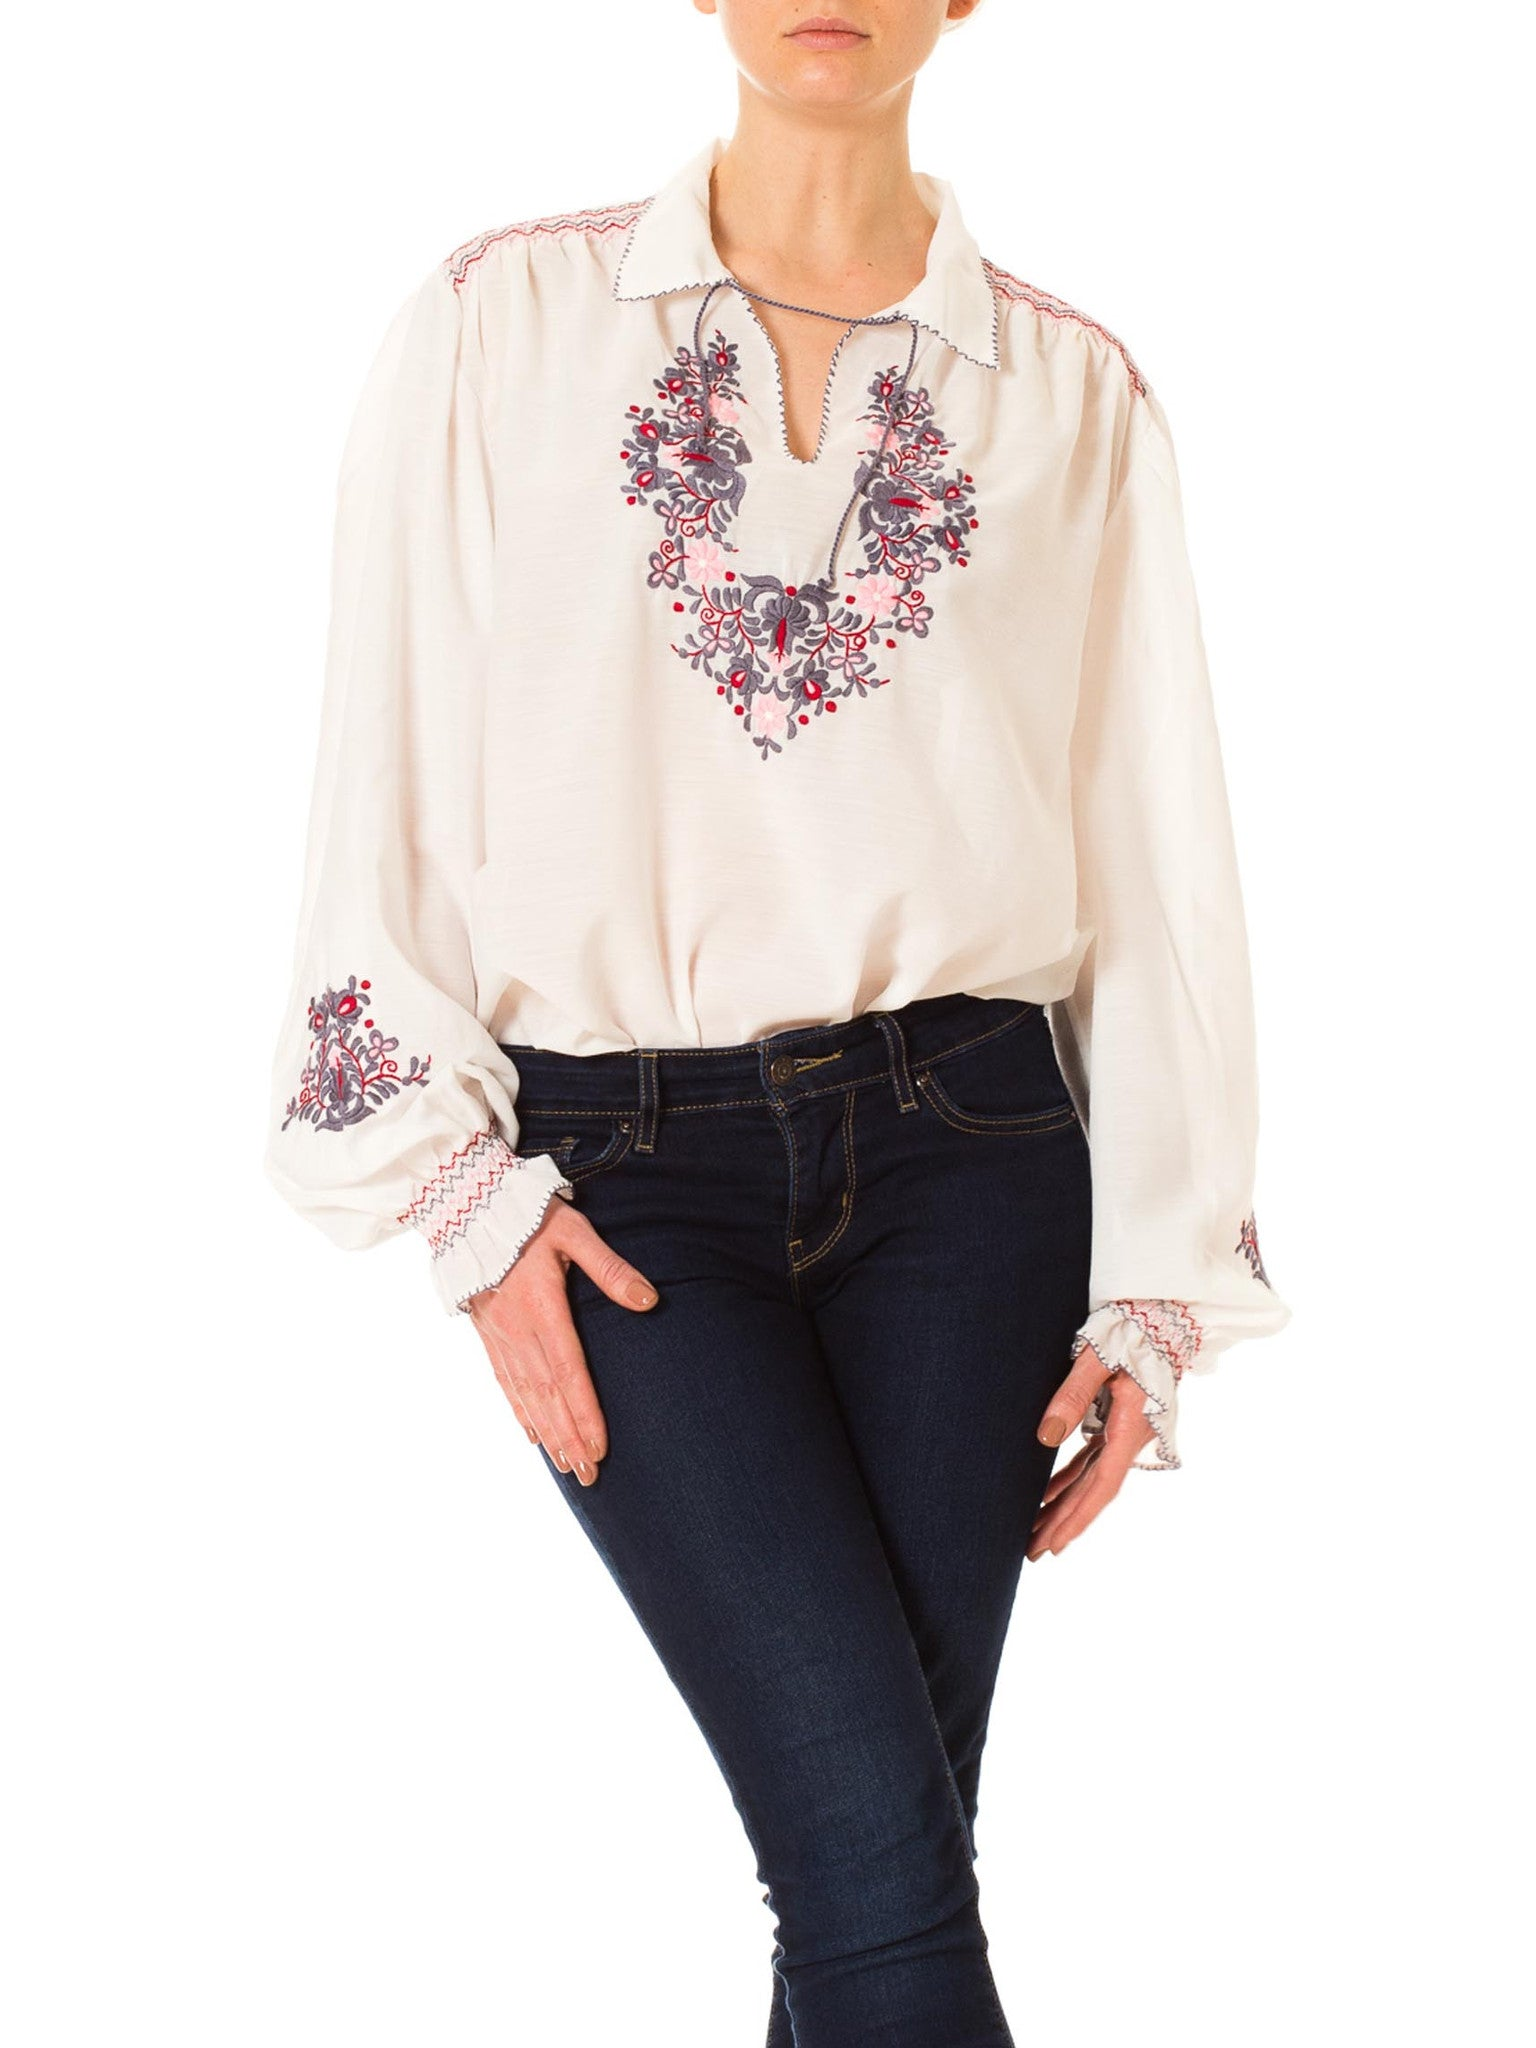 1970s Boho Ethnic Hand Embroidered Peasant Blouse